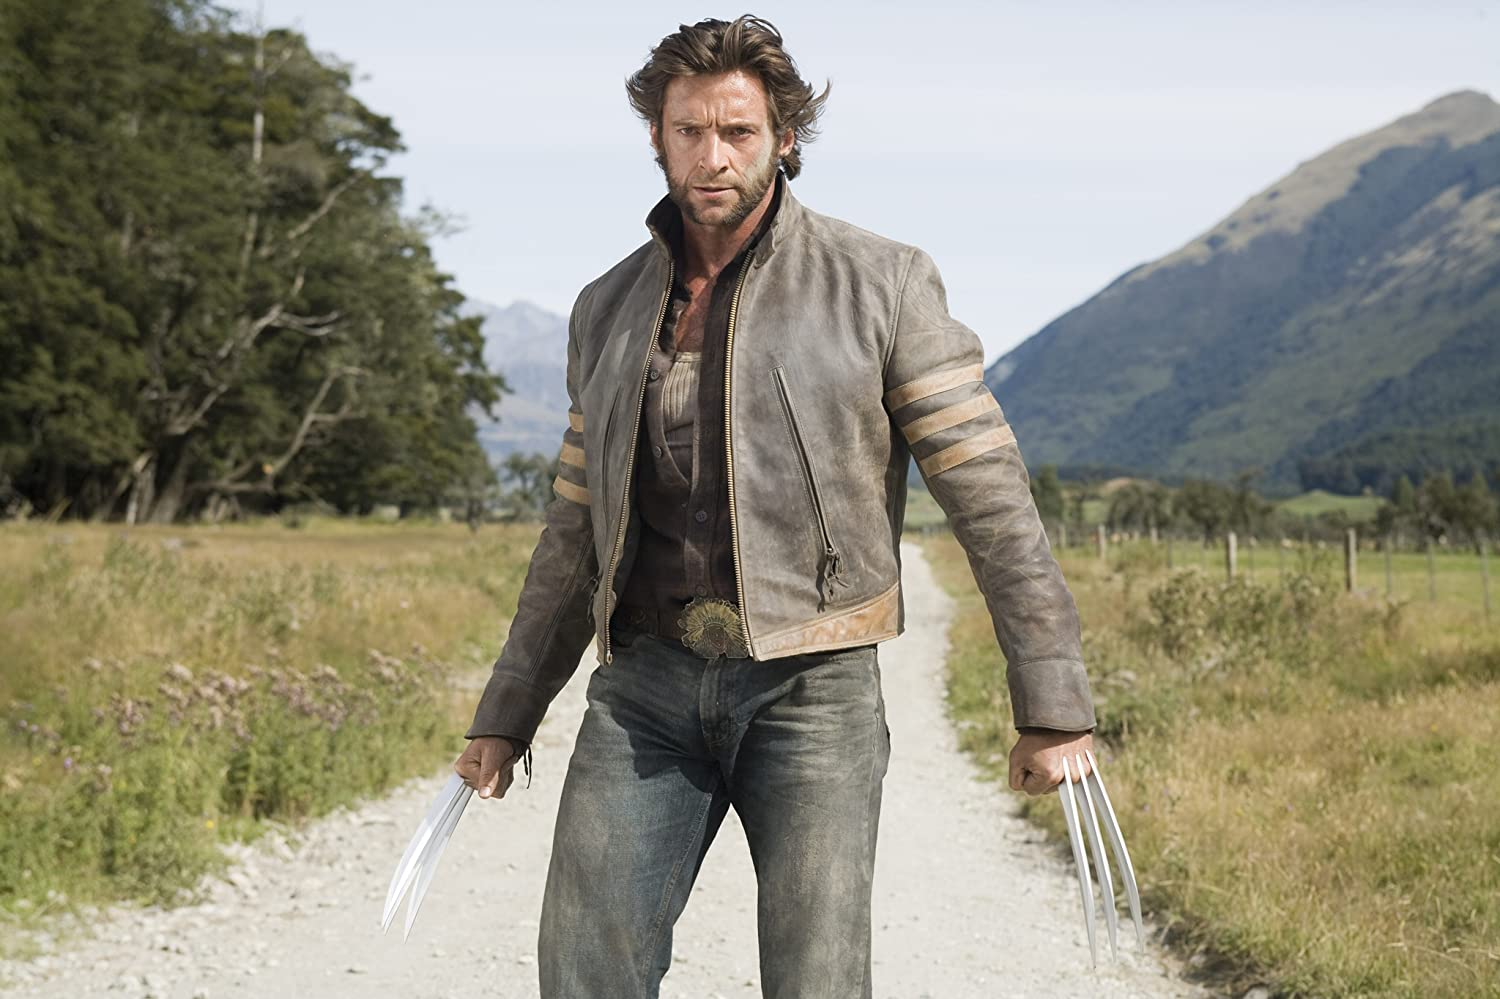 Hugh Jackman in X-Men Origins: Wolverine (2009)